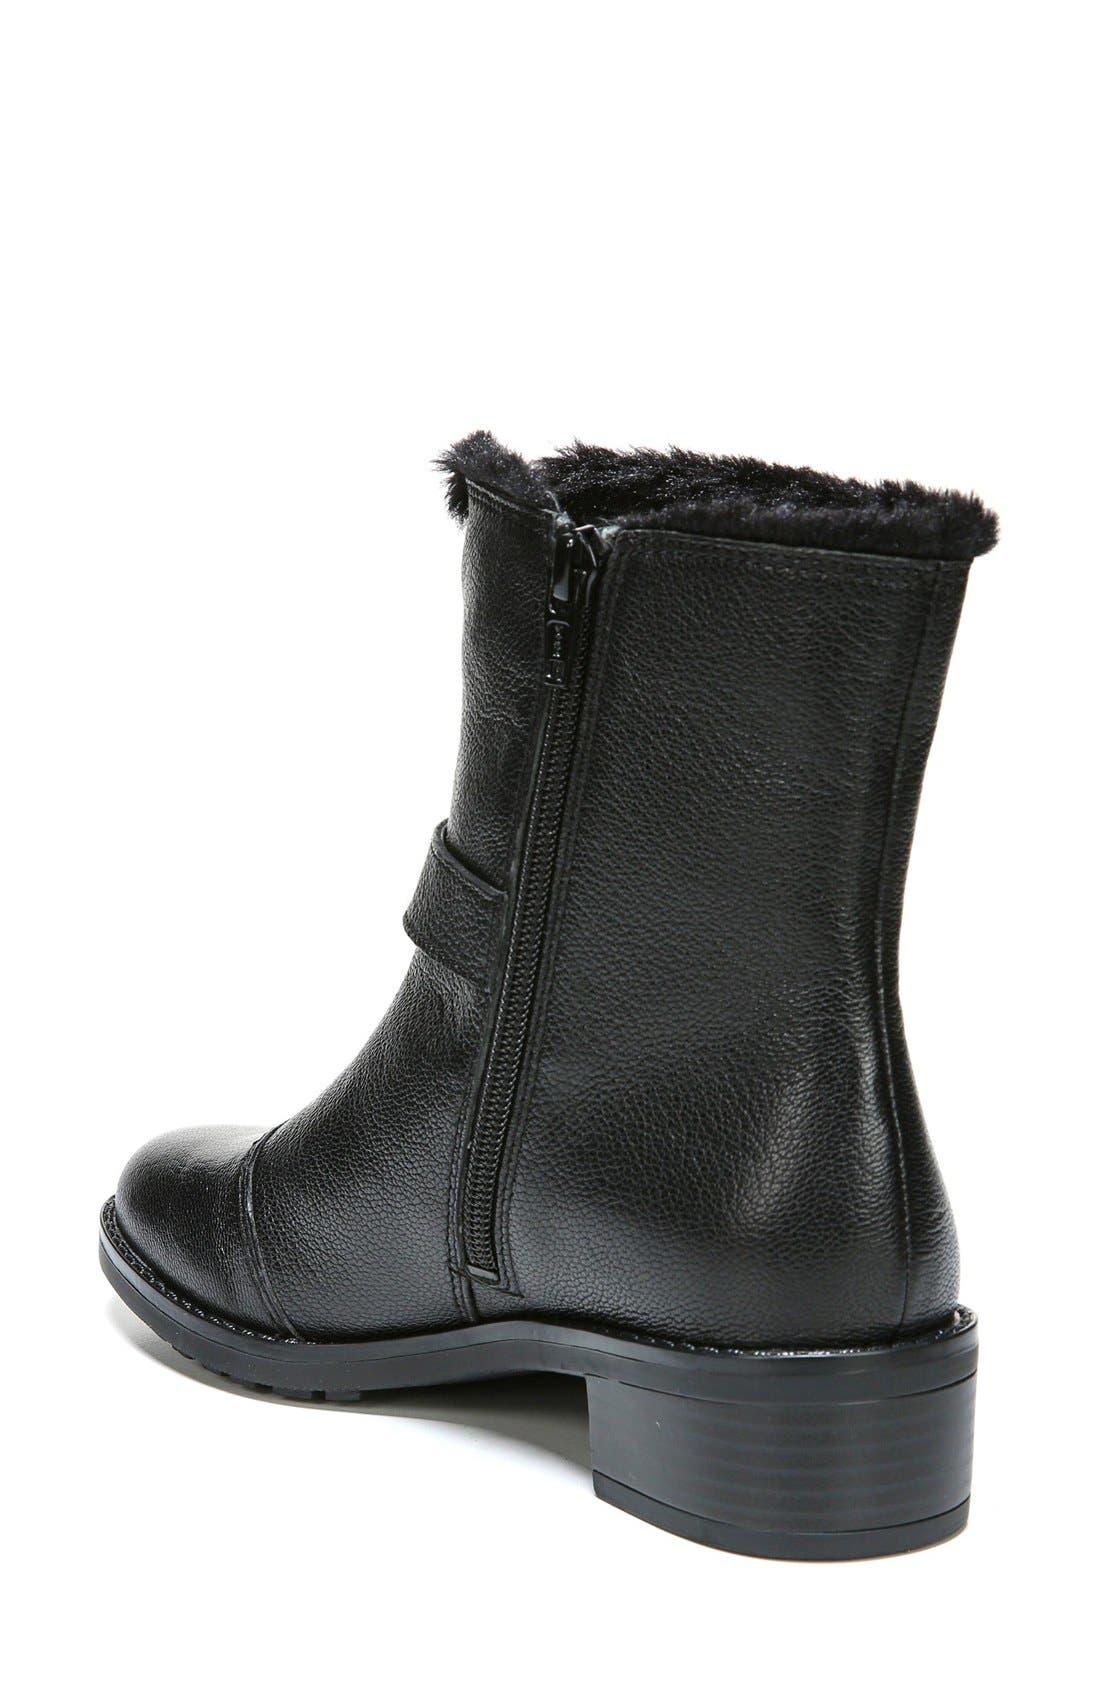 Alternate Image 2  - Naturalizer 'Madera' Boot (Women)